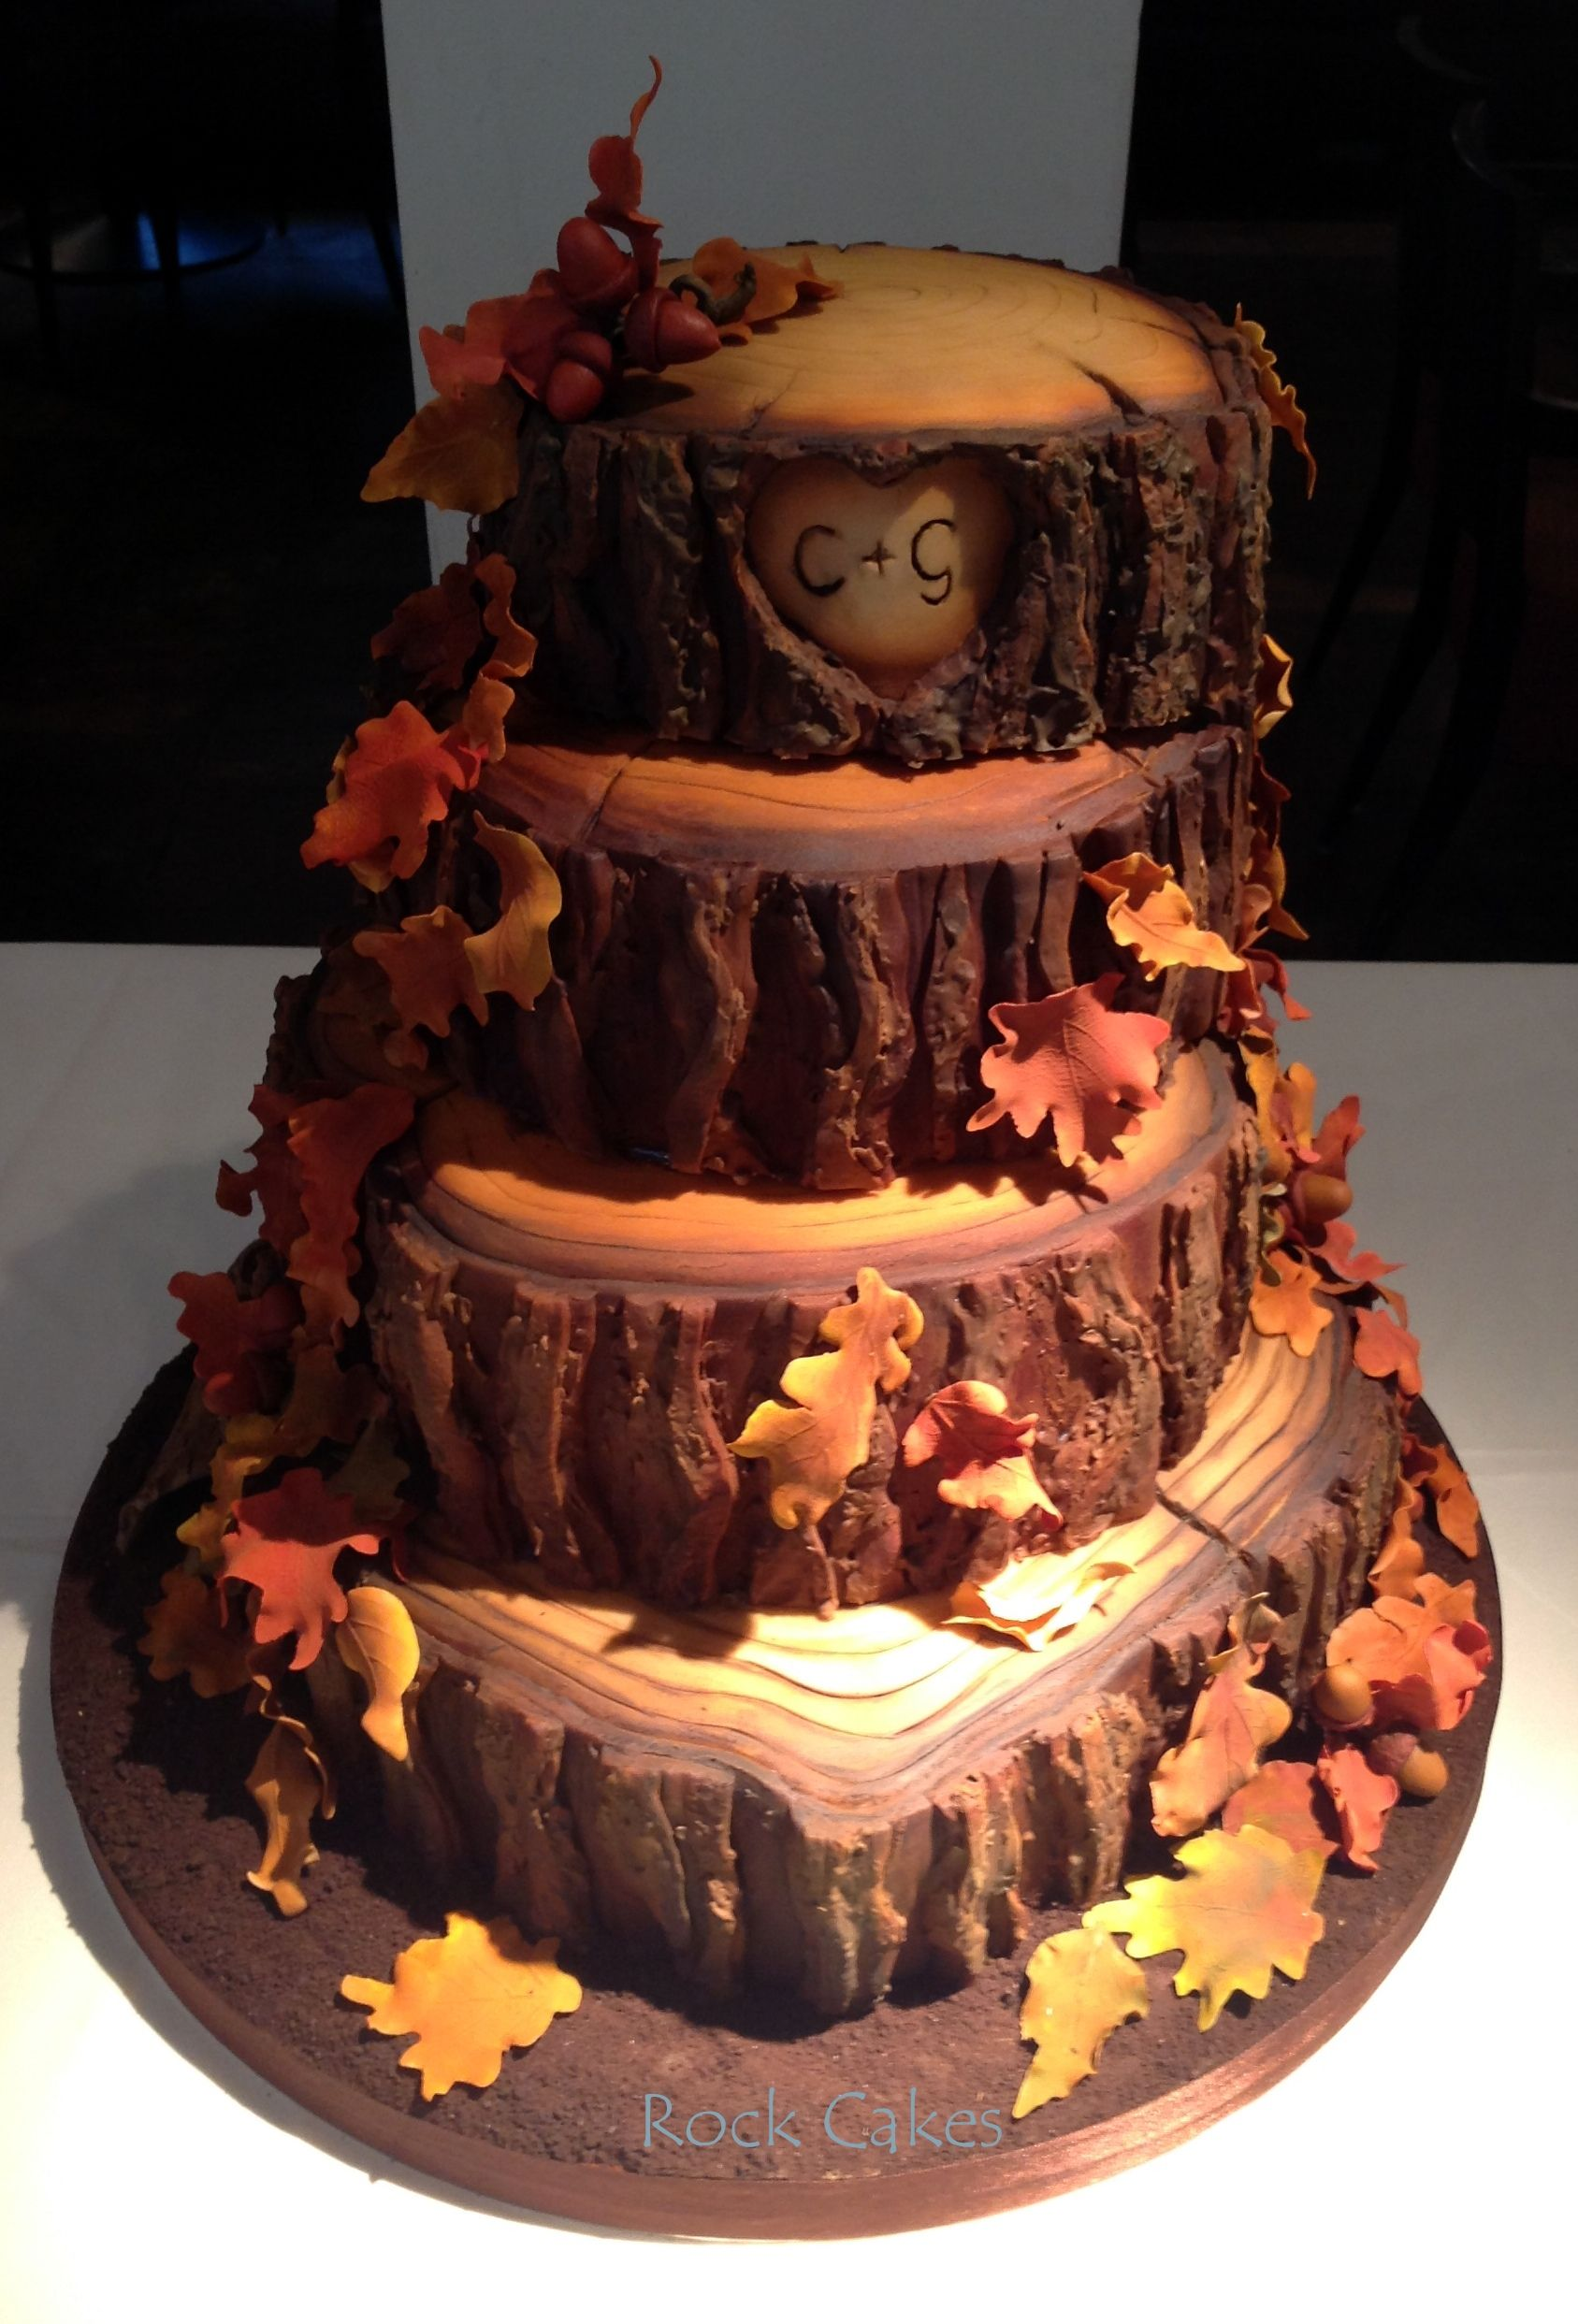 Zwieger Haus & Kuchen 2015 Carving Your Initials Into A Wedding Cake Tree It Doesn T Get